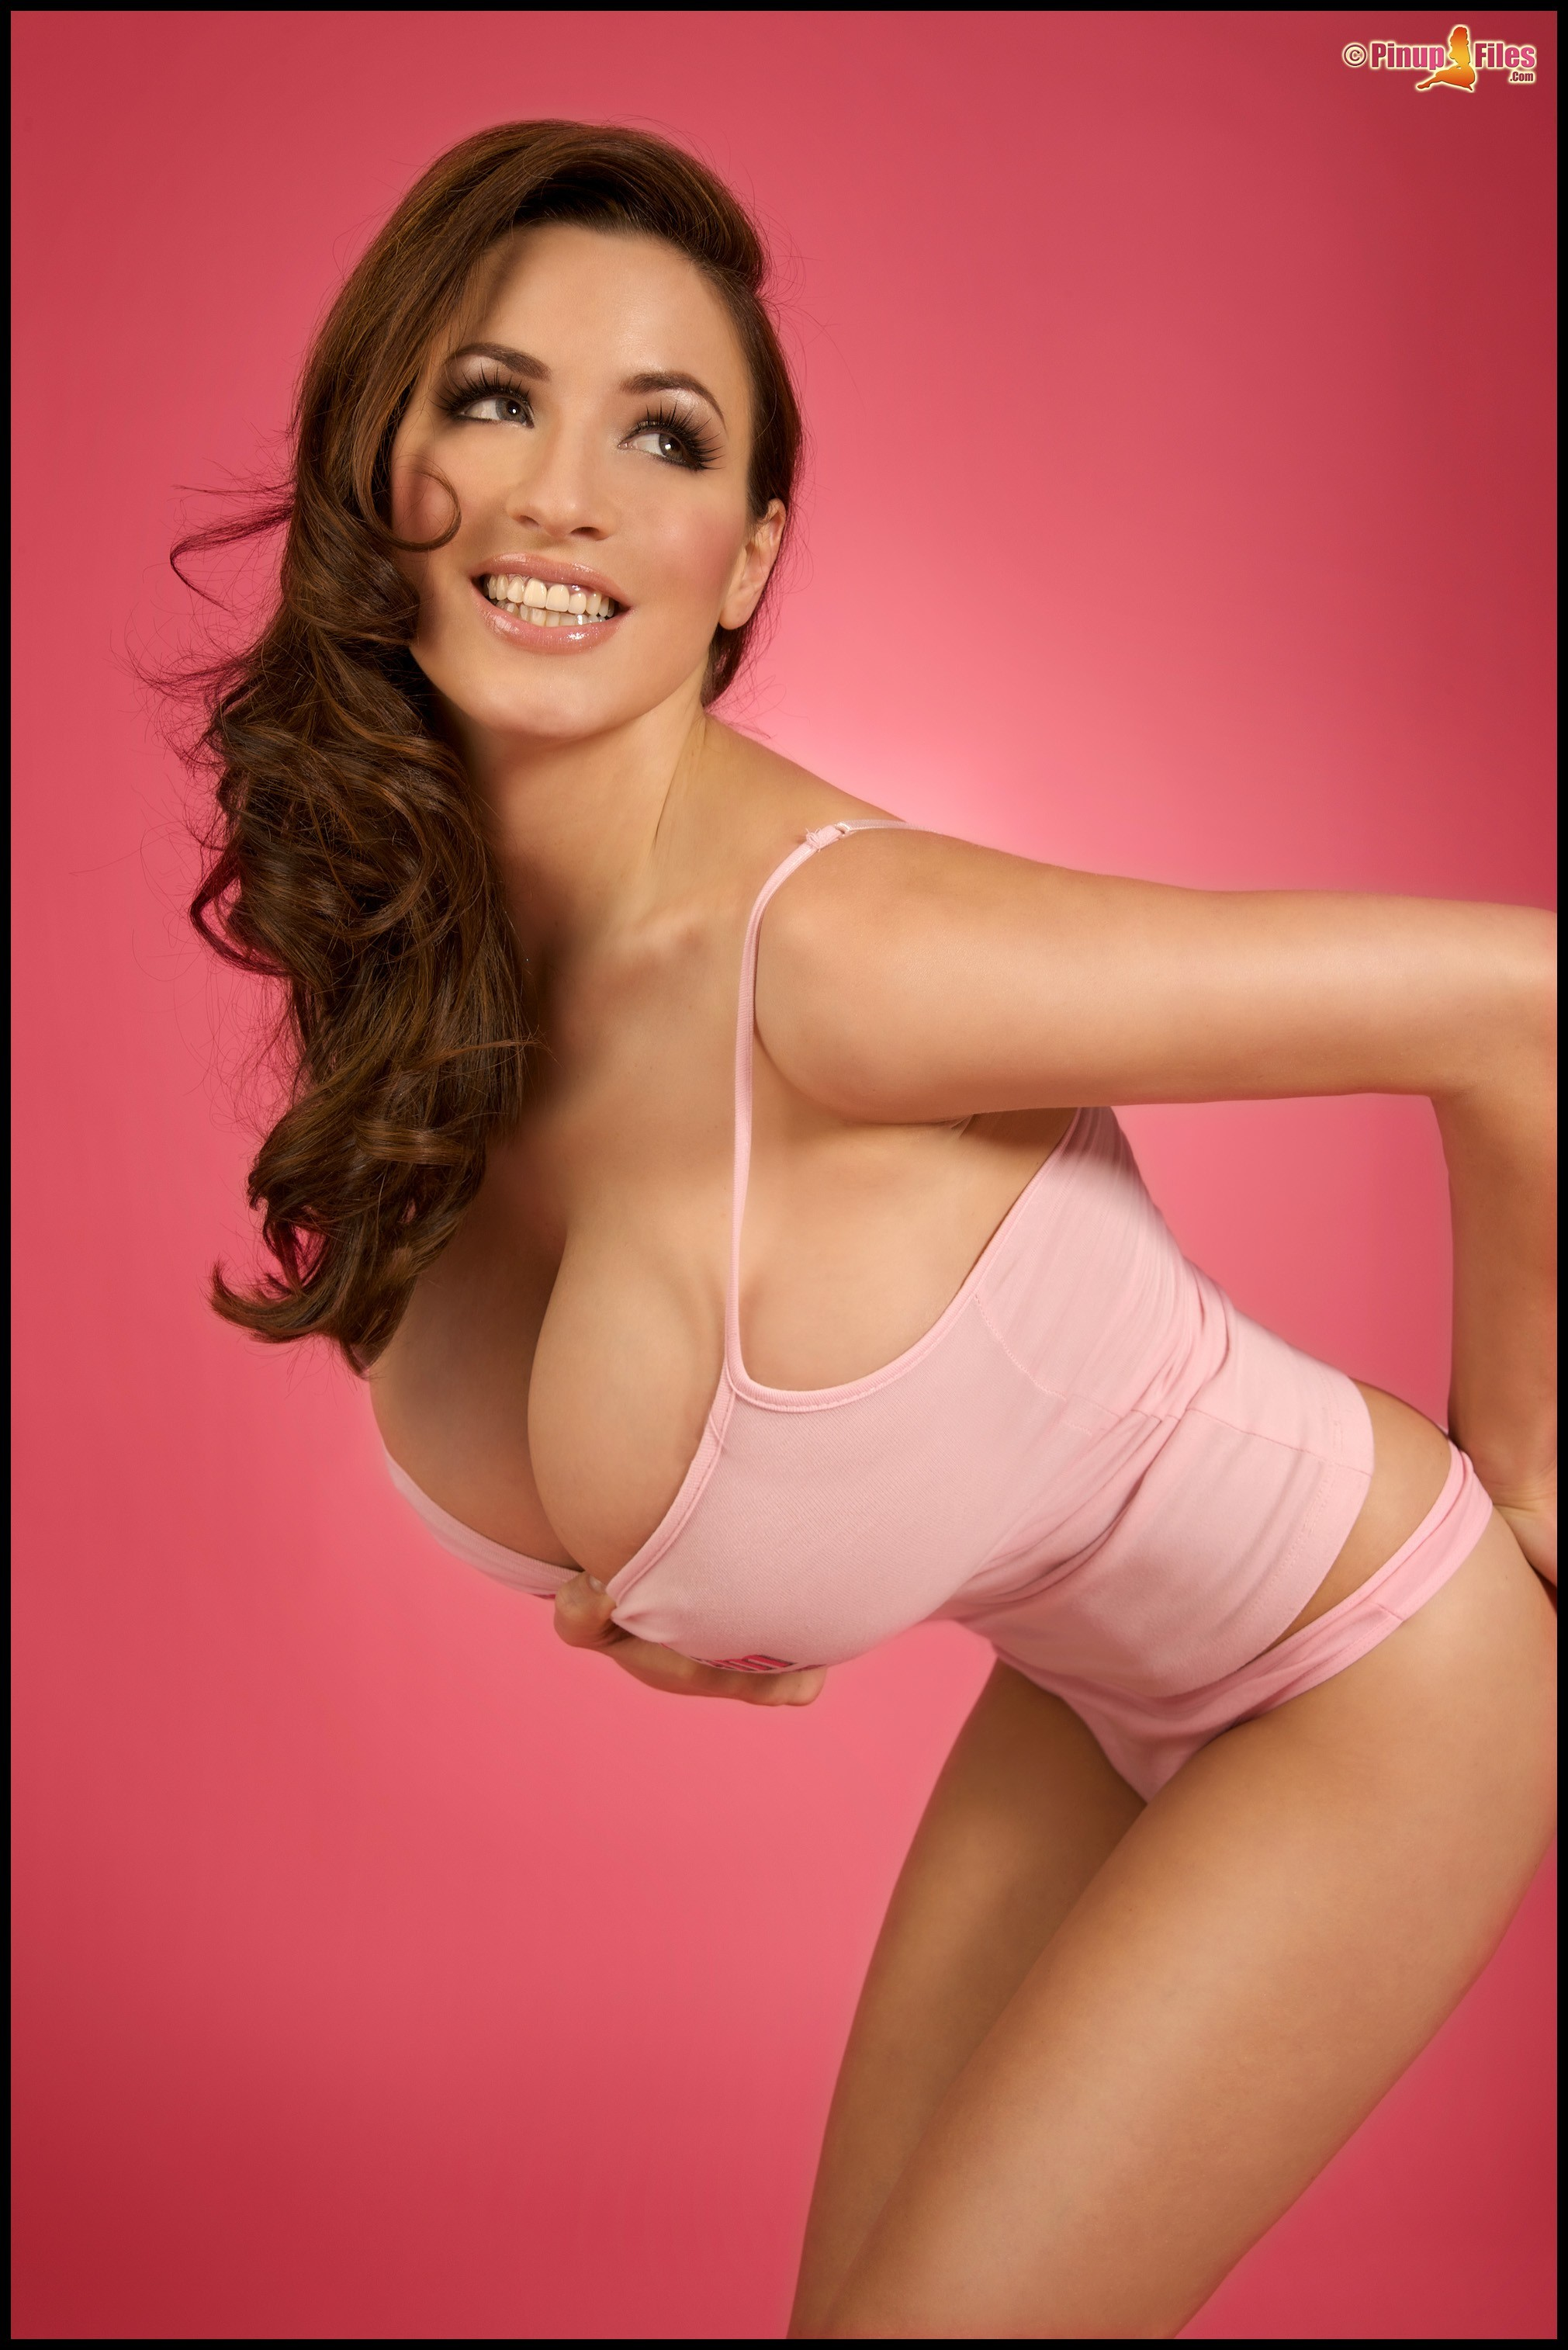 boobs Women jordan Carver